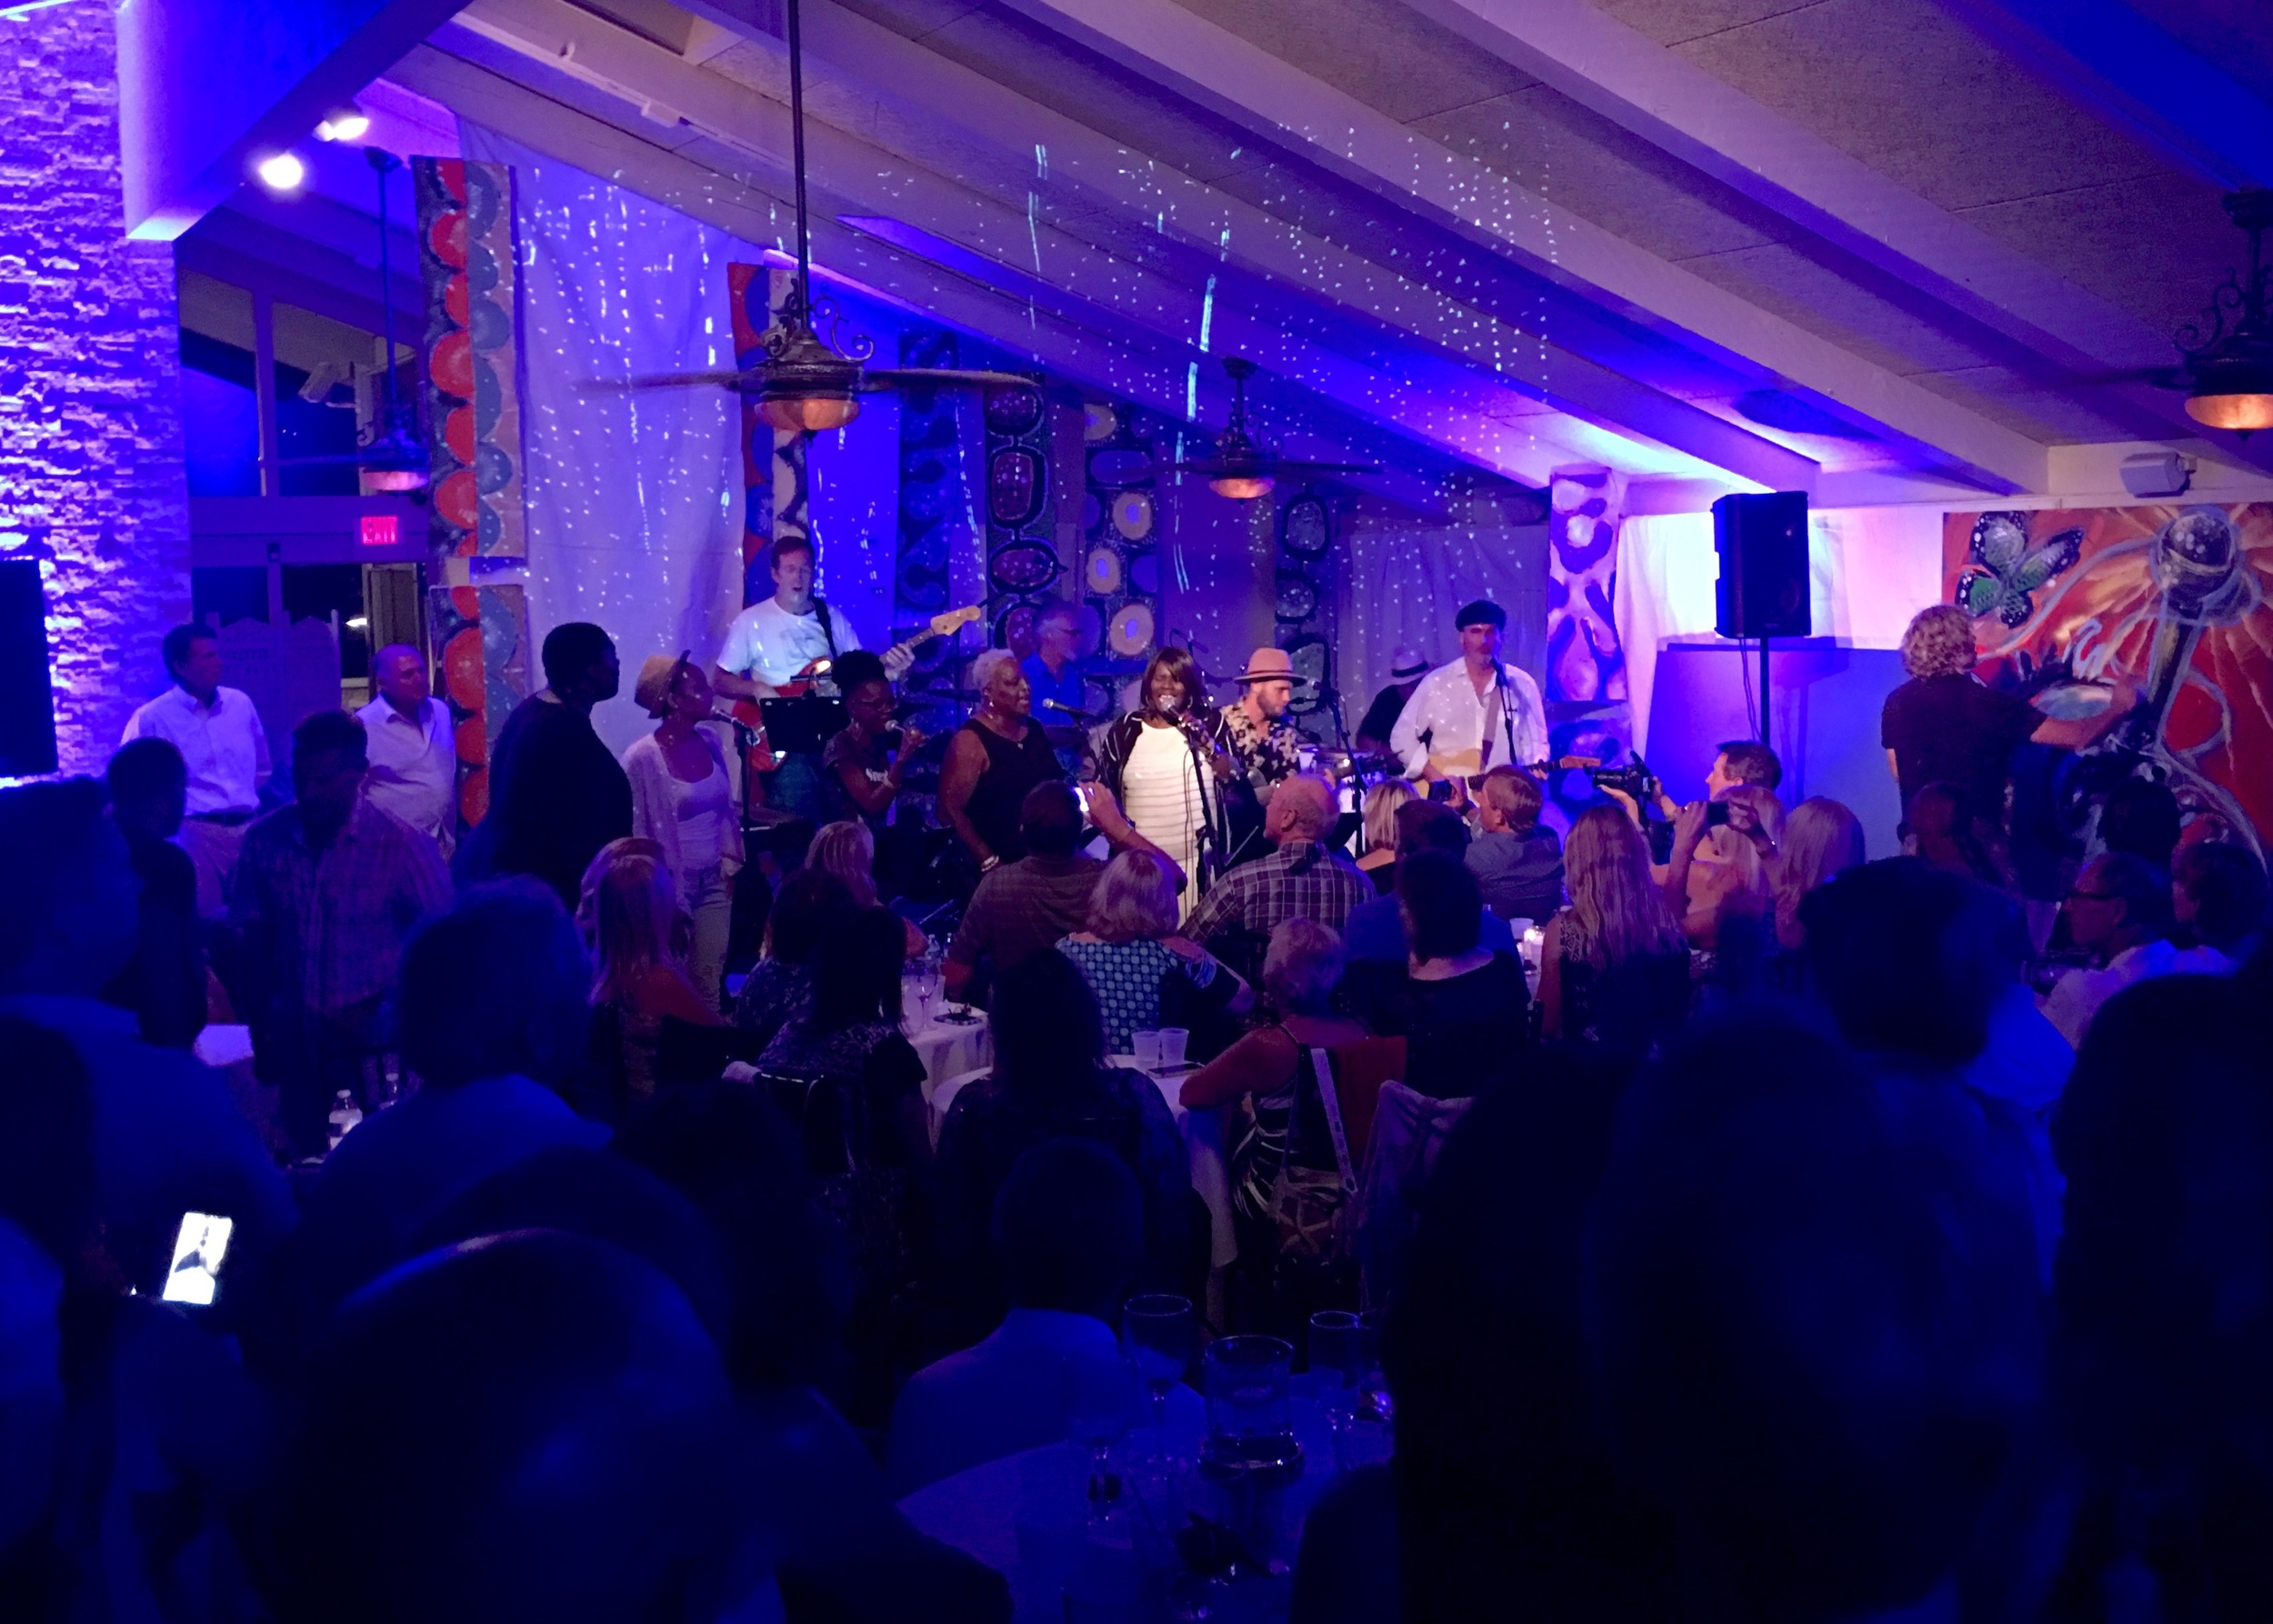 Party for the soul - Chris falson with an all star Gospel R&B Band, Thomas Clark performance live art, great food & drink, inspiring ocean views and a great crowd of 200 people desiring a night of good news.